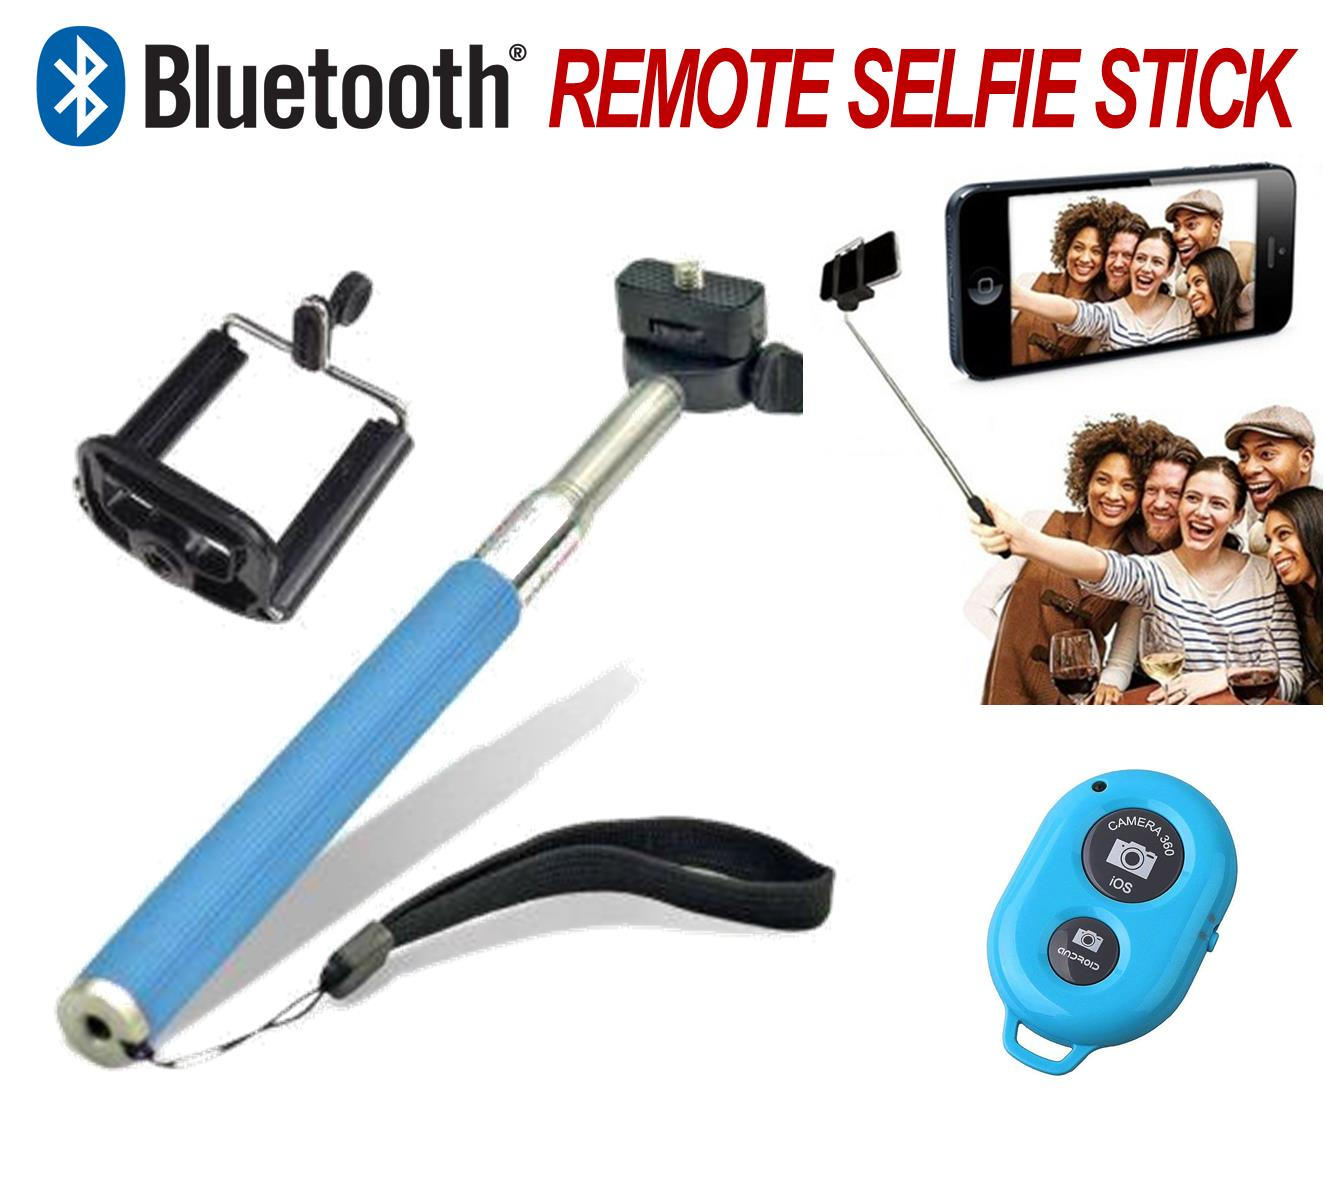 bluetooth remote monopod selfie stick mobile phone camera holder blue ebay. Black Bedroom Furniture Sets. Home Design Ideas